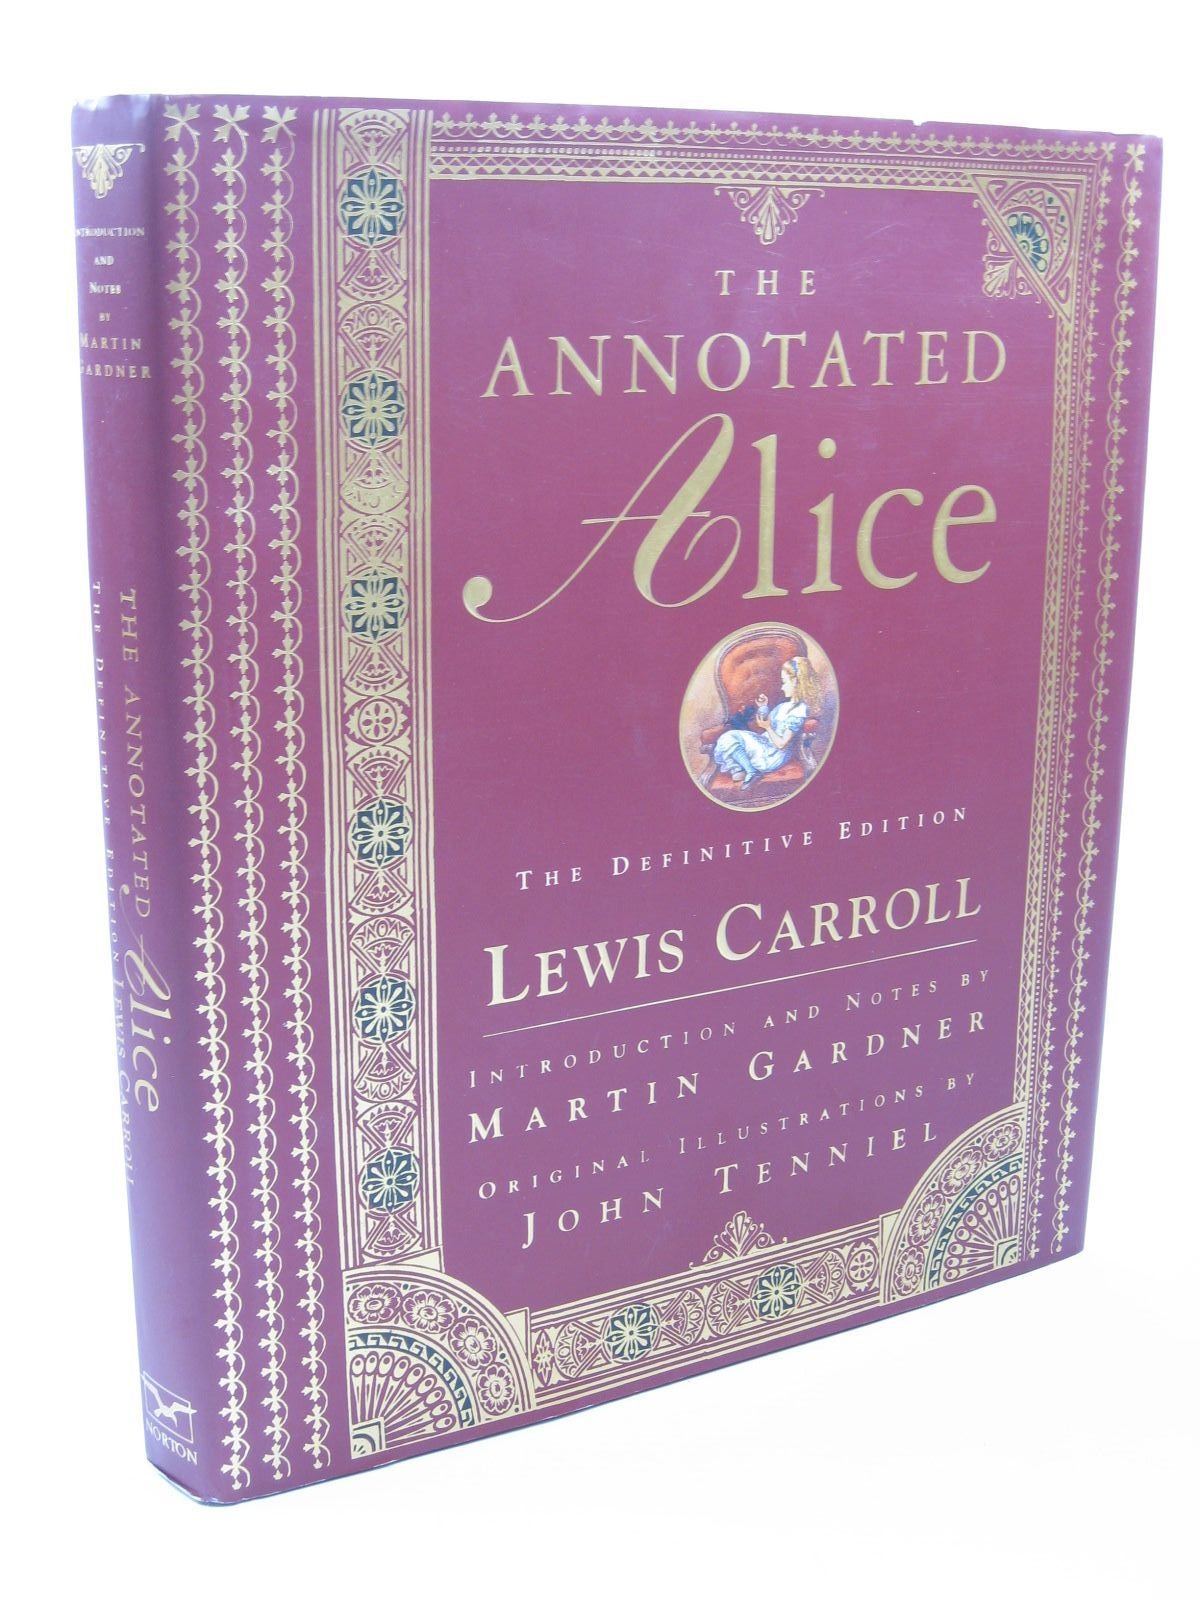 Photo of THE ANNOTATED ALICE - THE DEFINITIVE EDITION written by Carroll, Lewis<br />Gardner, Martin illustrated by Tenniel, John published by W.W. Norton & Company Inc. (STOCK CODE: 1312028)  for sale by Stella & Rose's Books